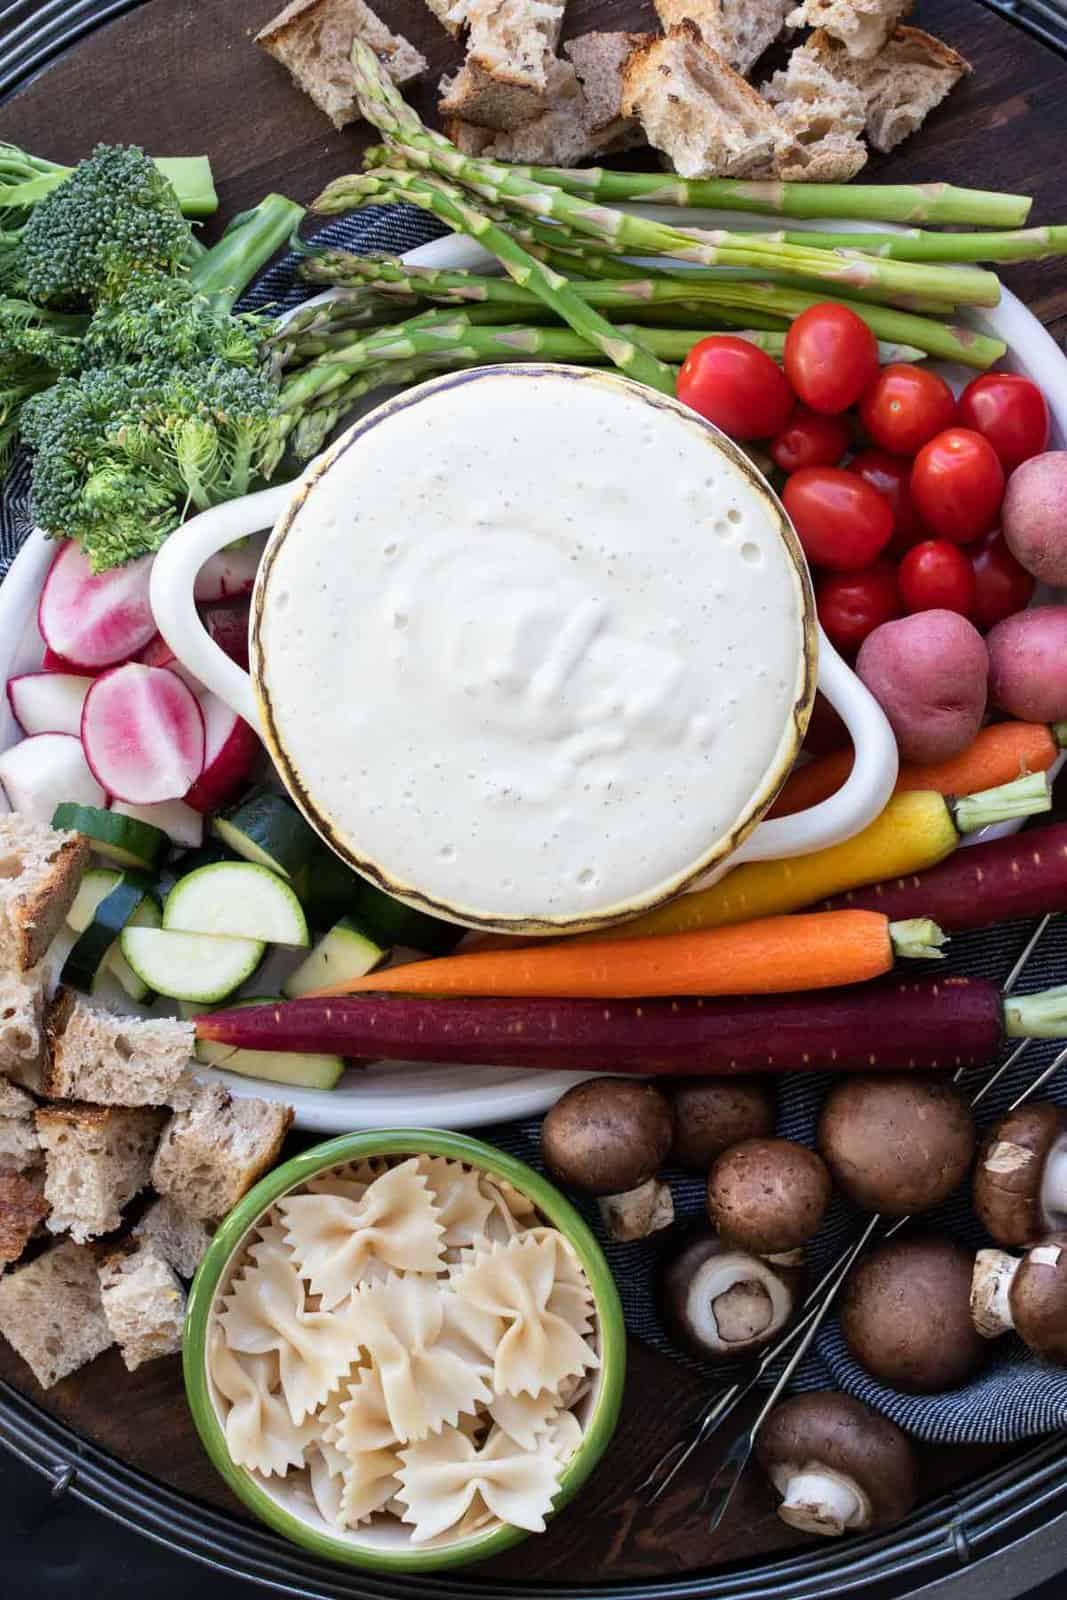 Bowl of white cheese fondue surrounded by veggies and bread